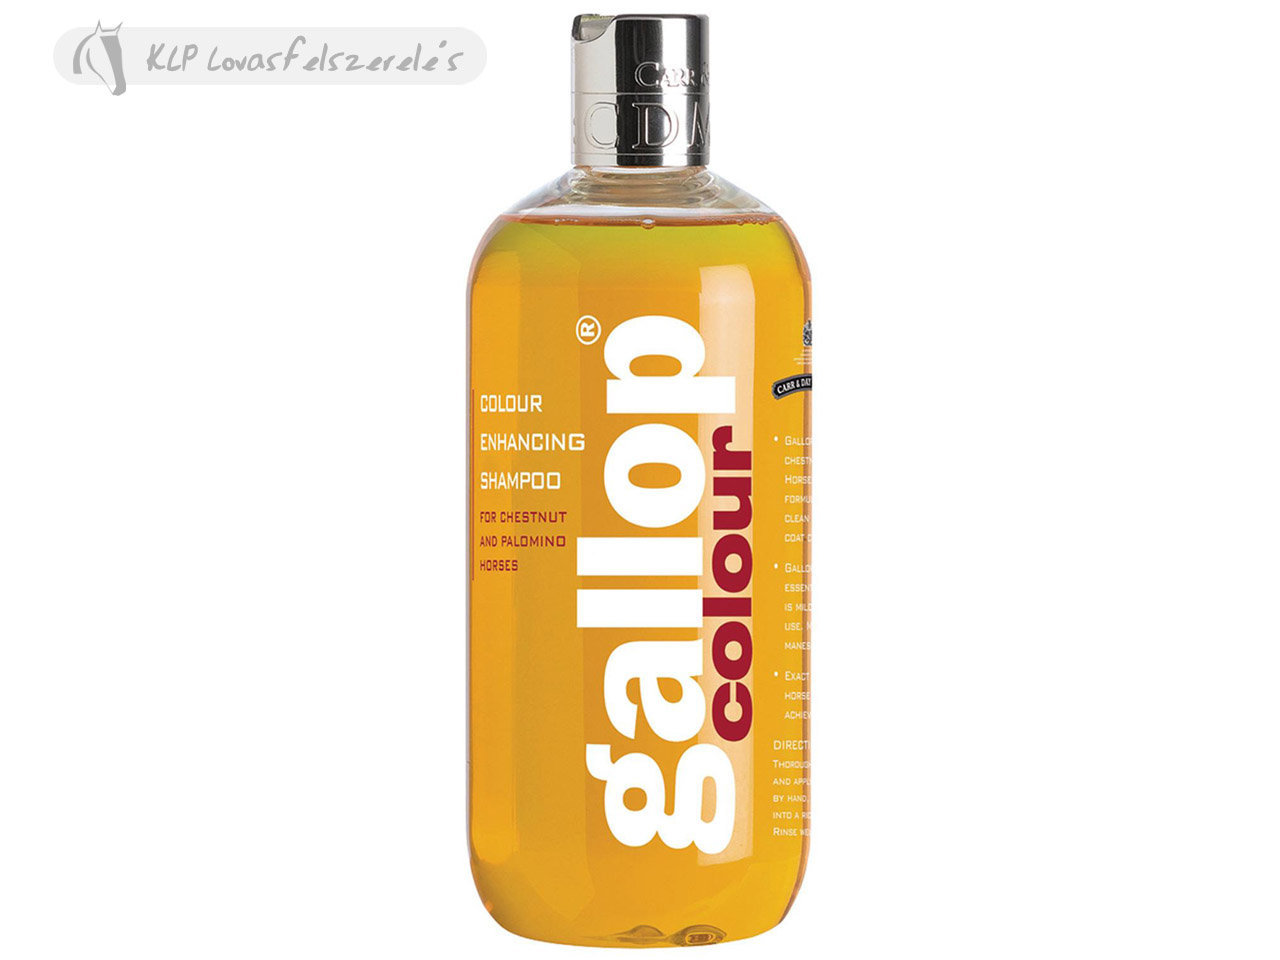 Sampon Gallop Pej Lóra (500 Ml)